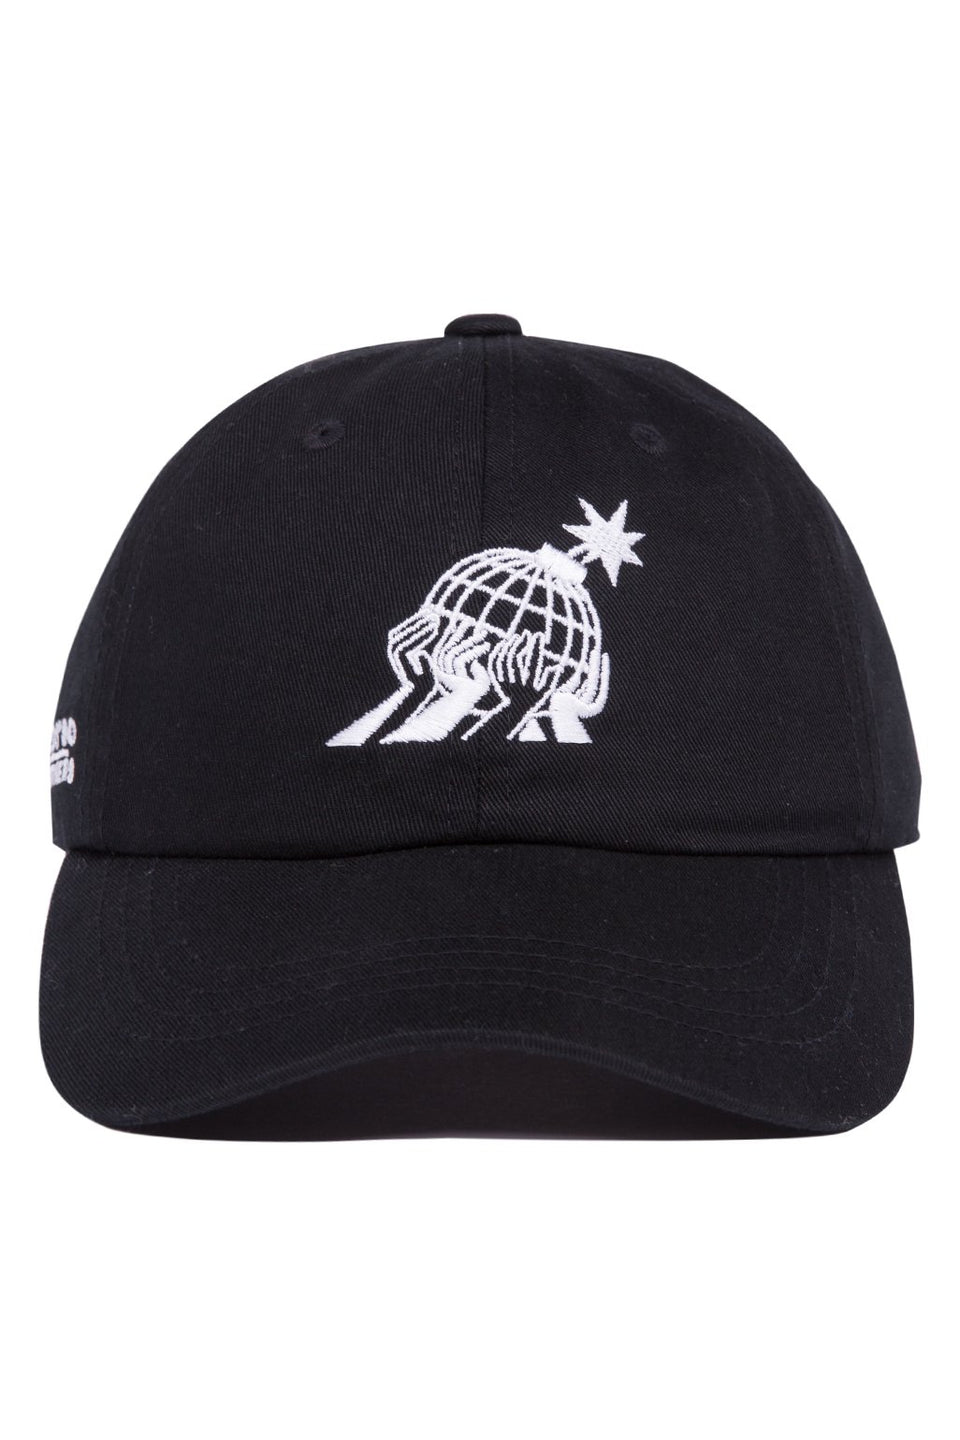 Brothers Dad Hat-HEADWEAR-The Hundreds UK